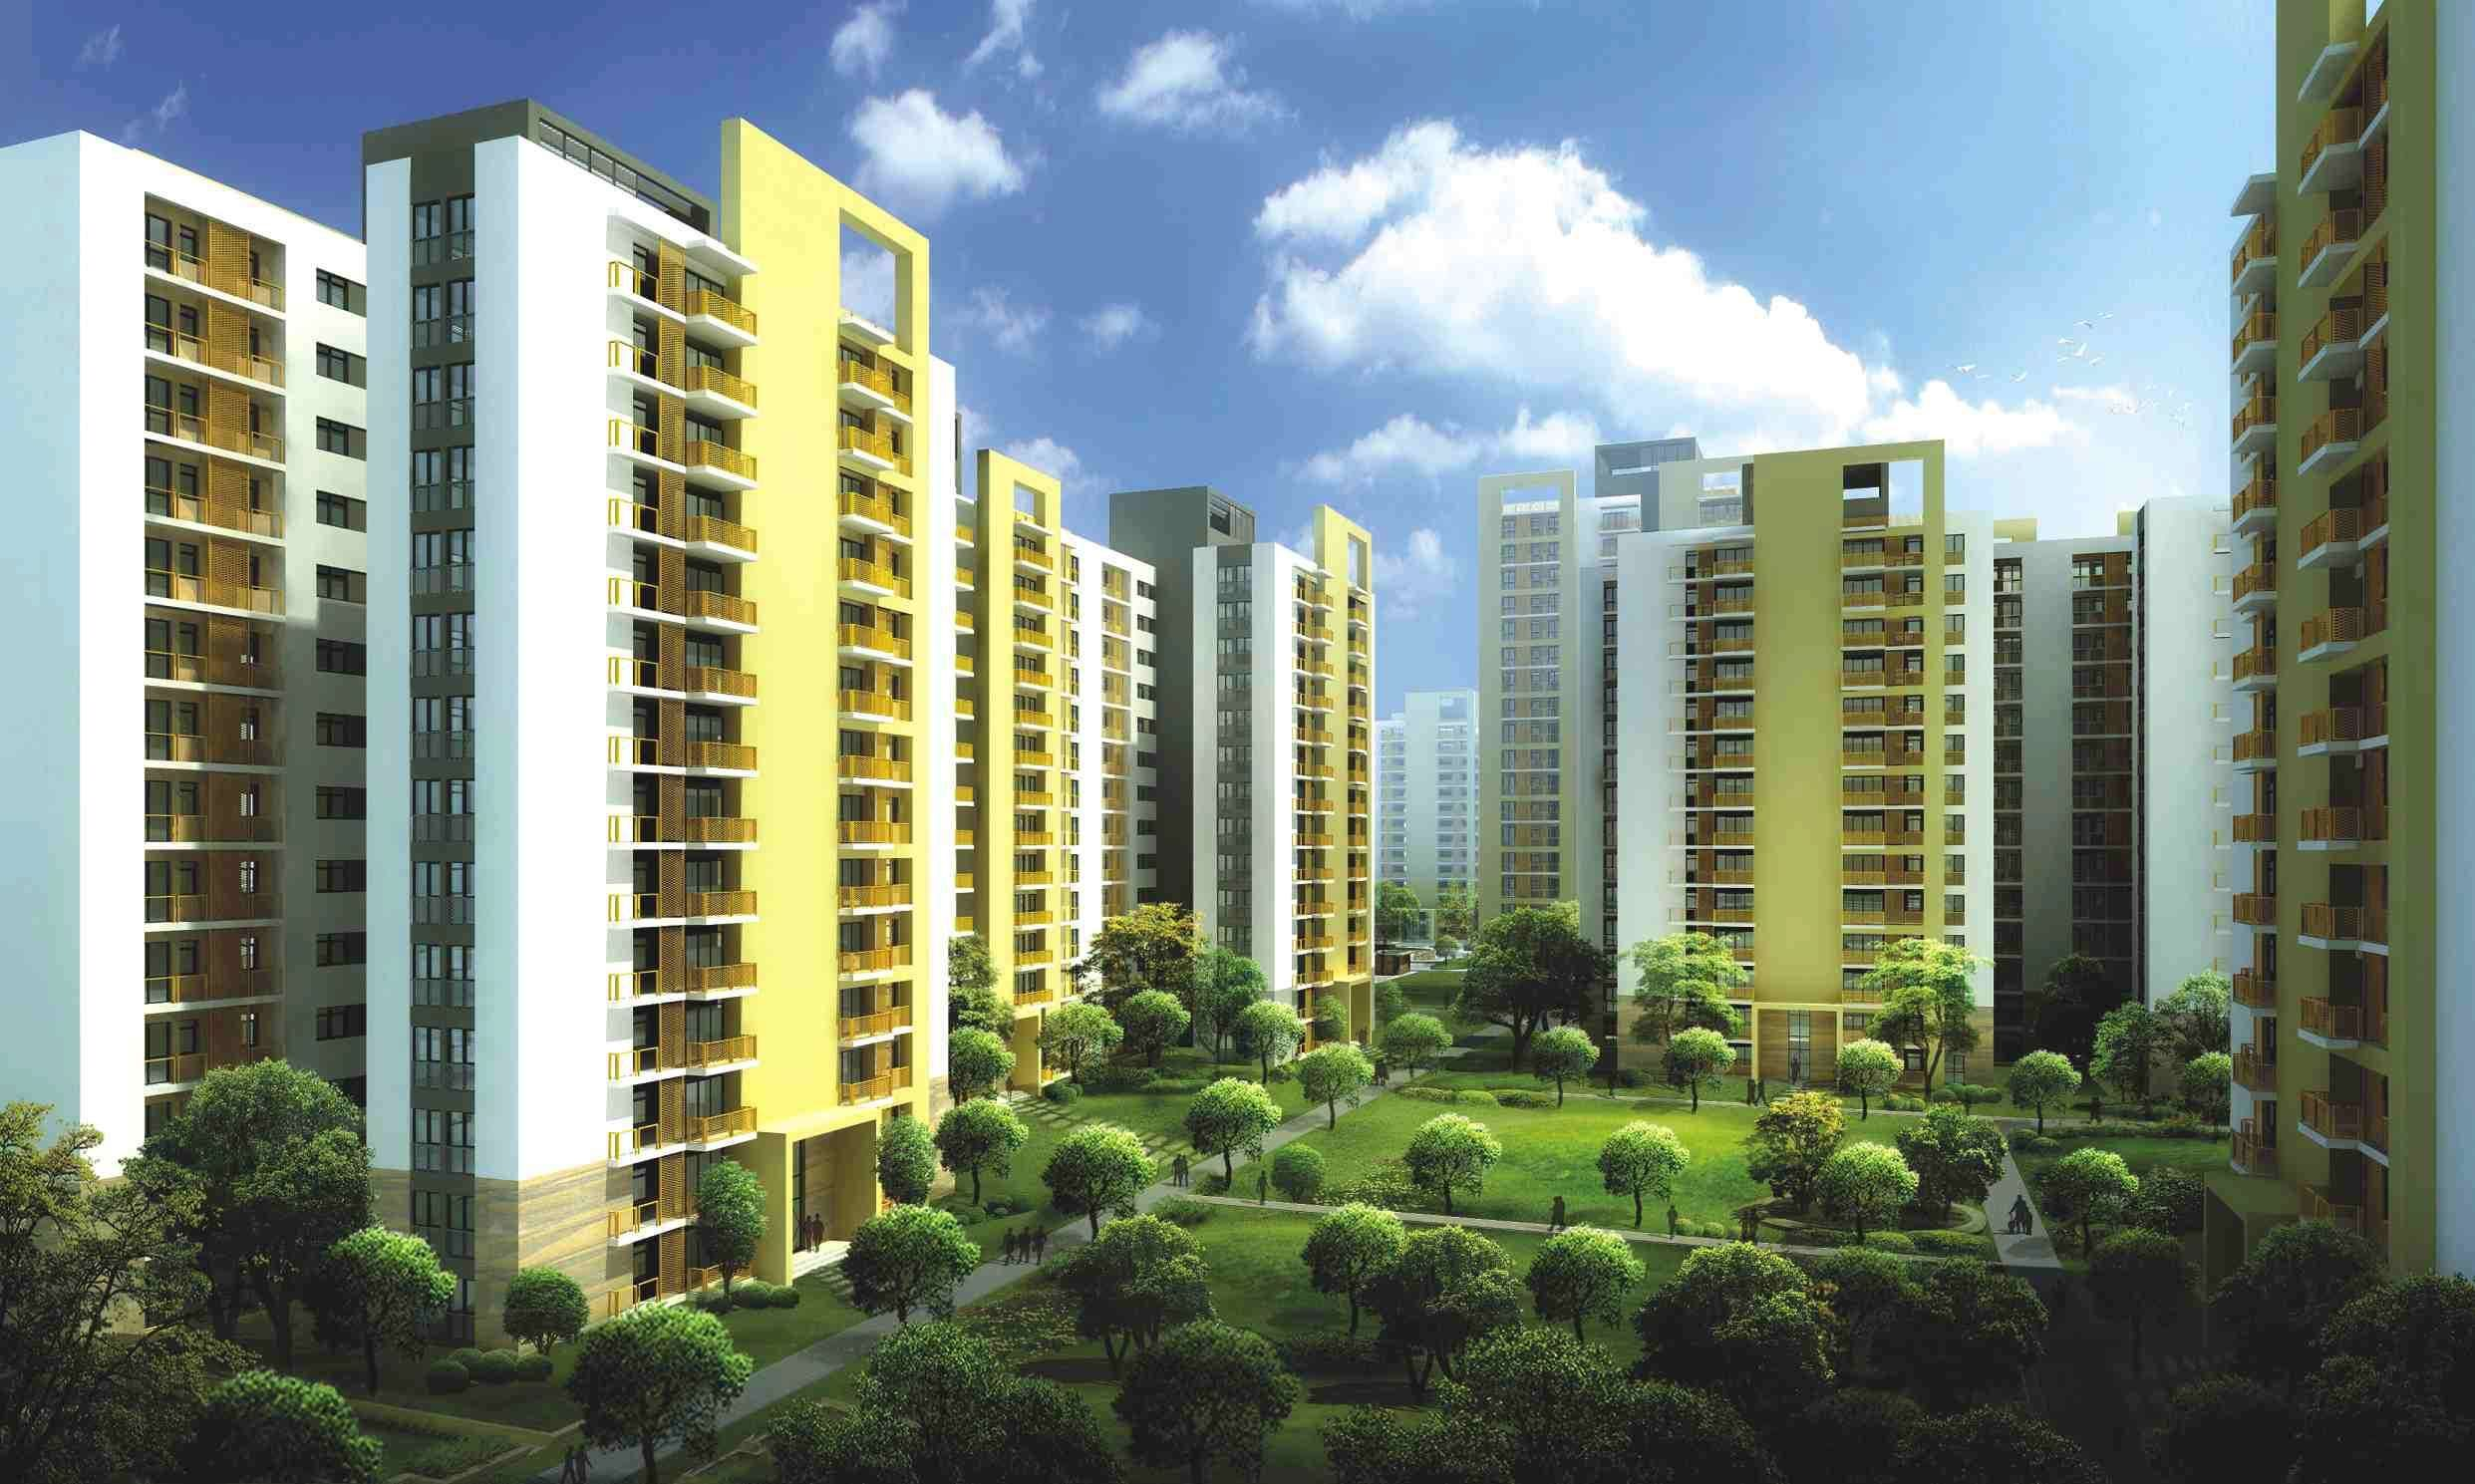 Search Upcoming Residential Projects In Gurgaon Buy Sell And Rent Best Residential Properties In Gurgaon Avai Affordable Housing Apartments For Sale Gurgaon